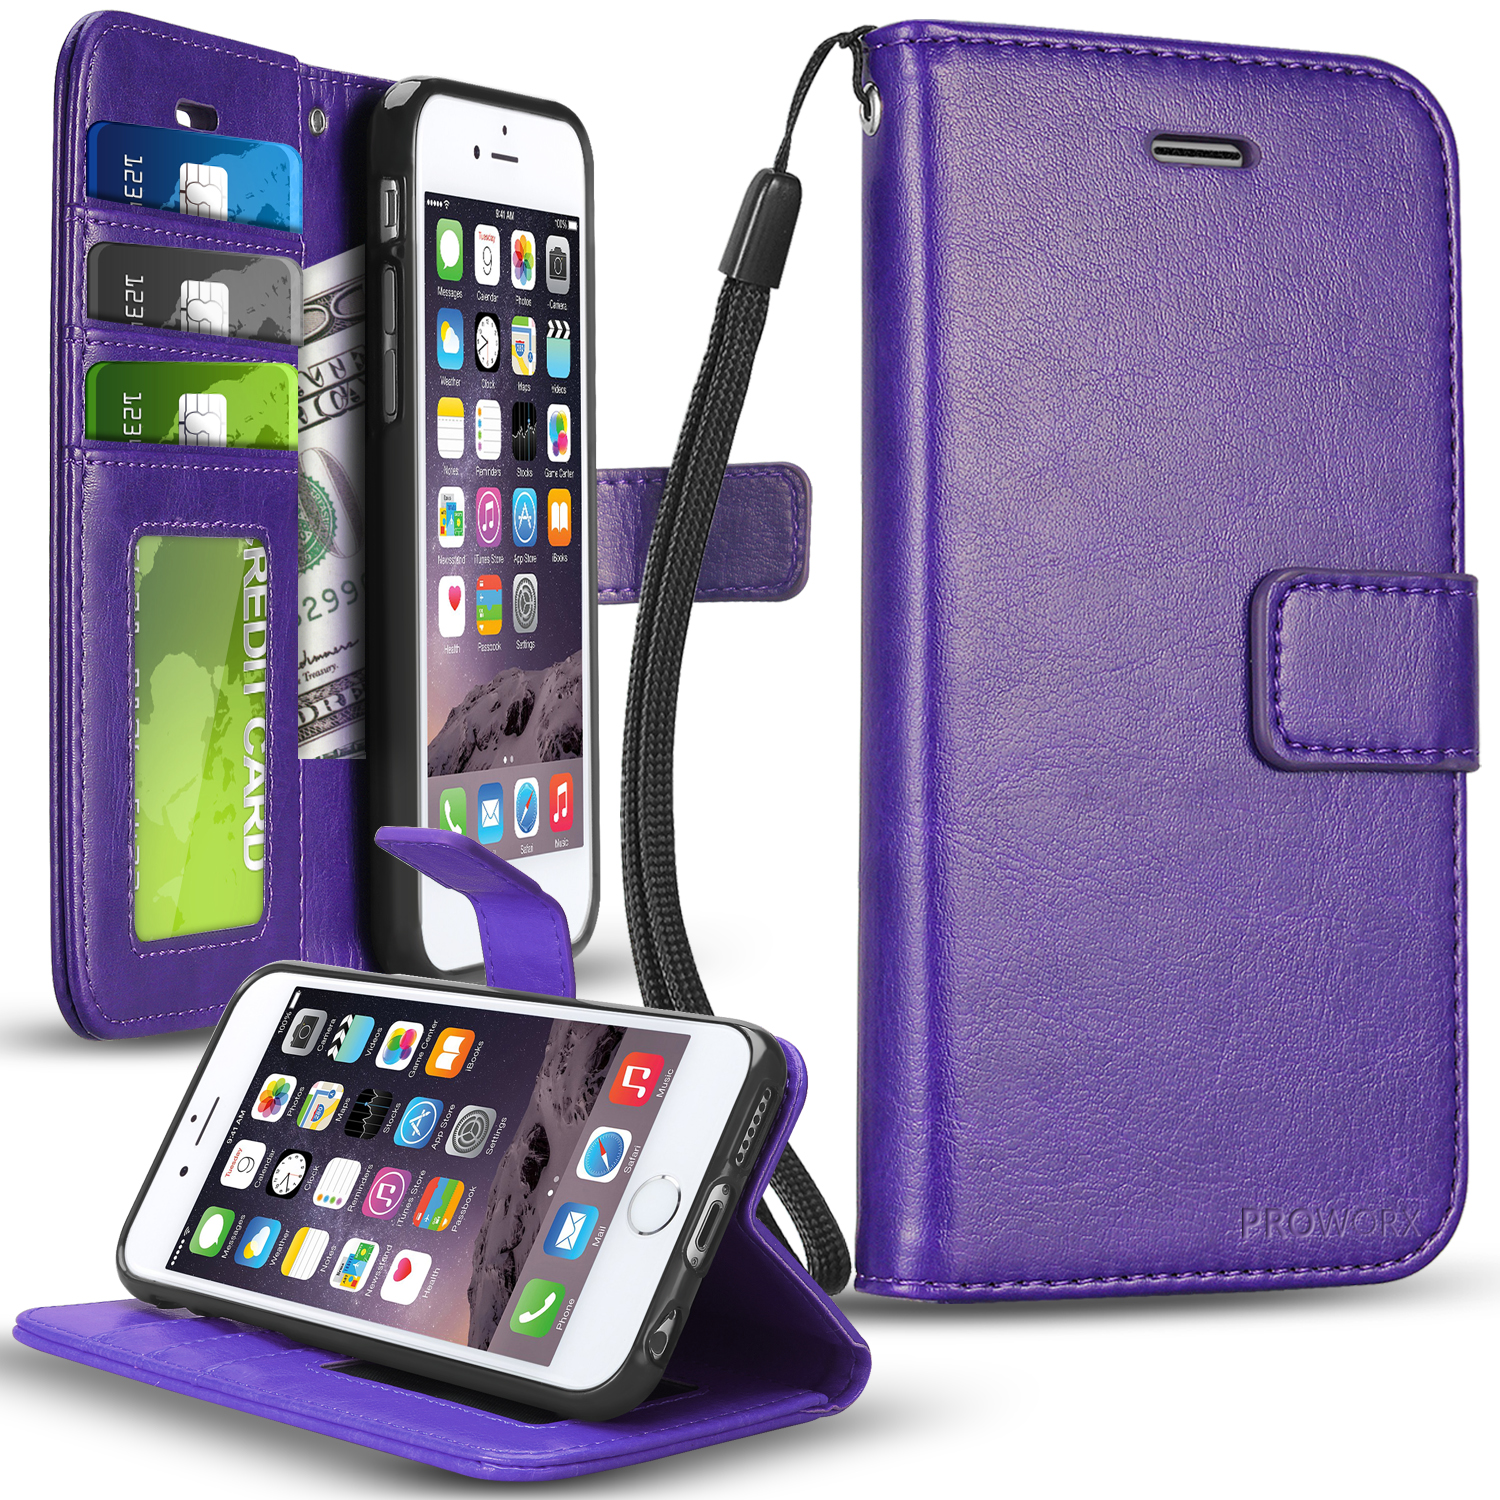 Apple iPhone 6 6S (4.7) Purple ProWorx Wallet Case Luxury PU Leather Case Cover With Card Slots & Stand